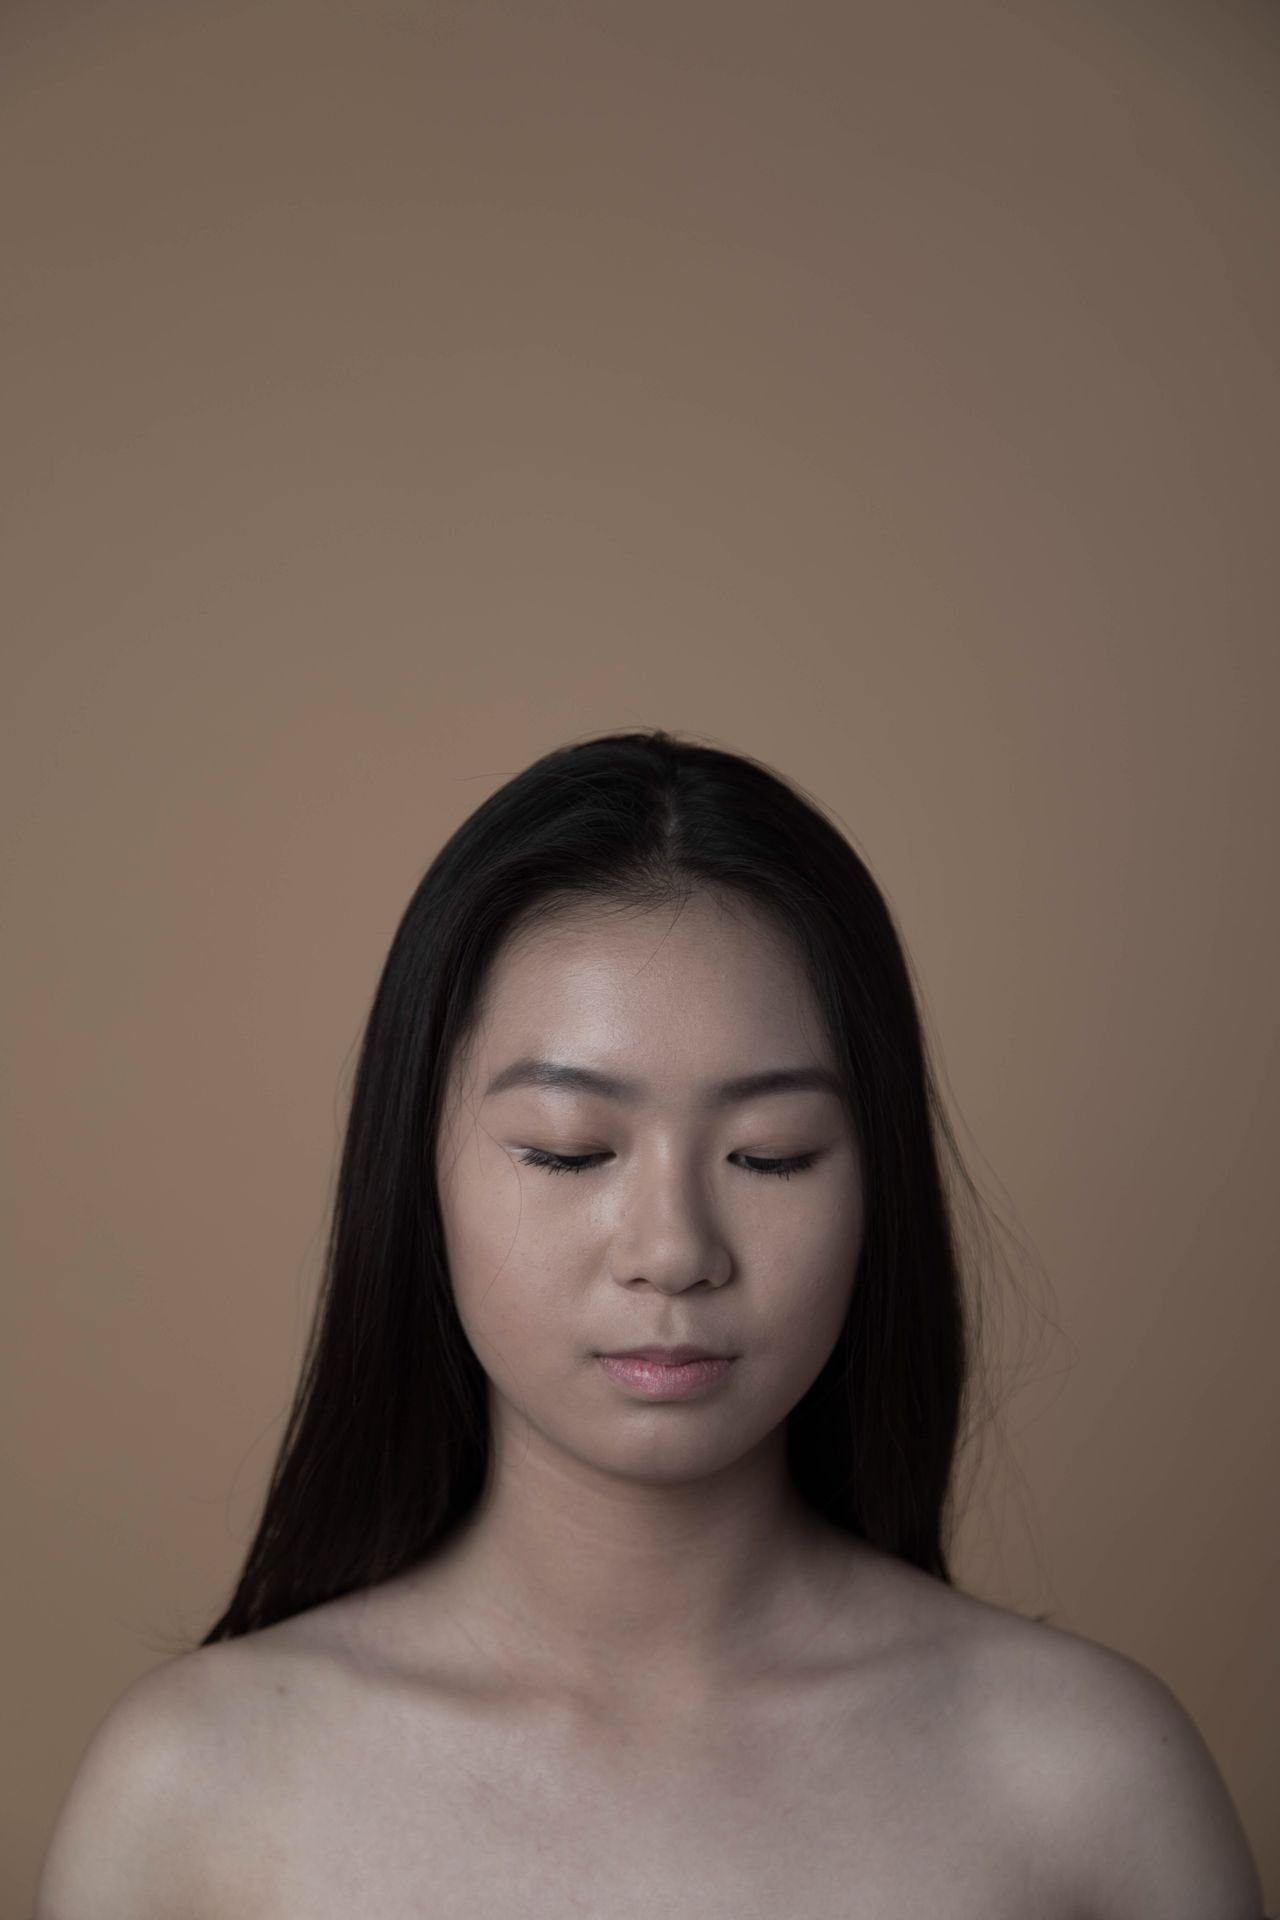 Eyes Closed one person studio shot front view headshot black hair beautiful woman young adult Shirtless real people lifestyles colored background beige background beauty close-up young women indoors day Adult people The Portraitist - 2017 EyeEm Awards EyeEmNewHere